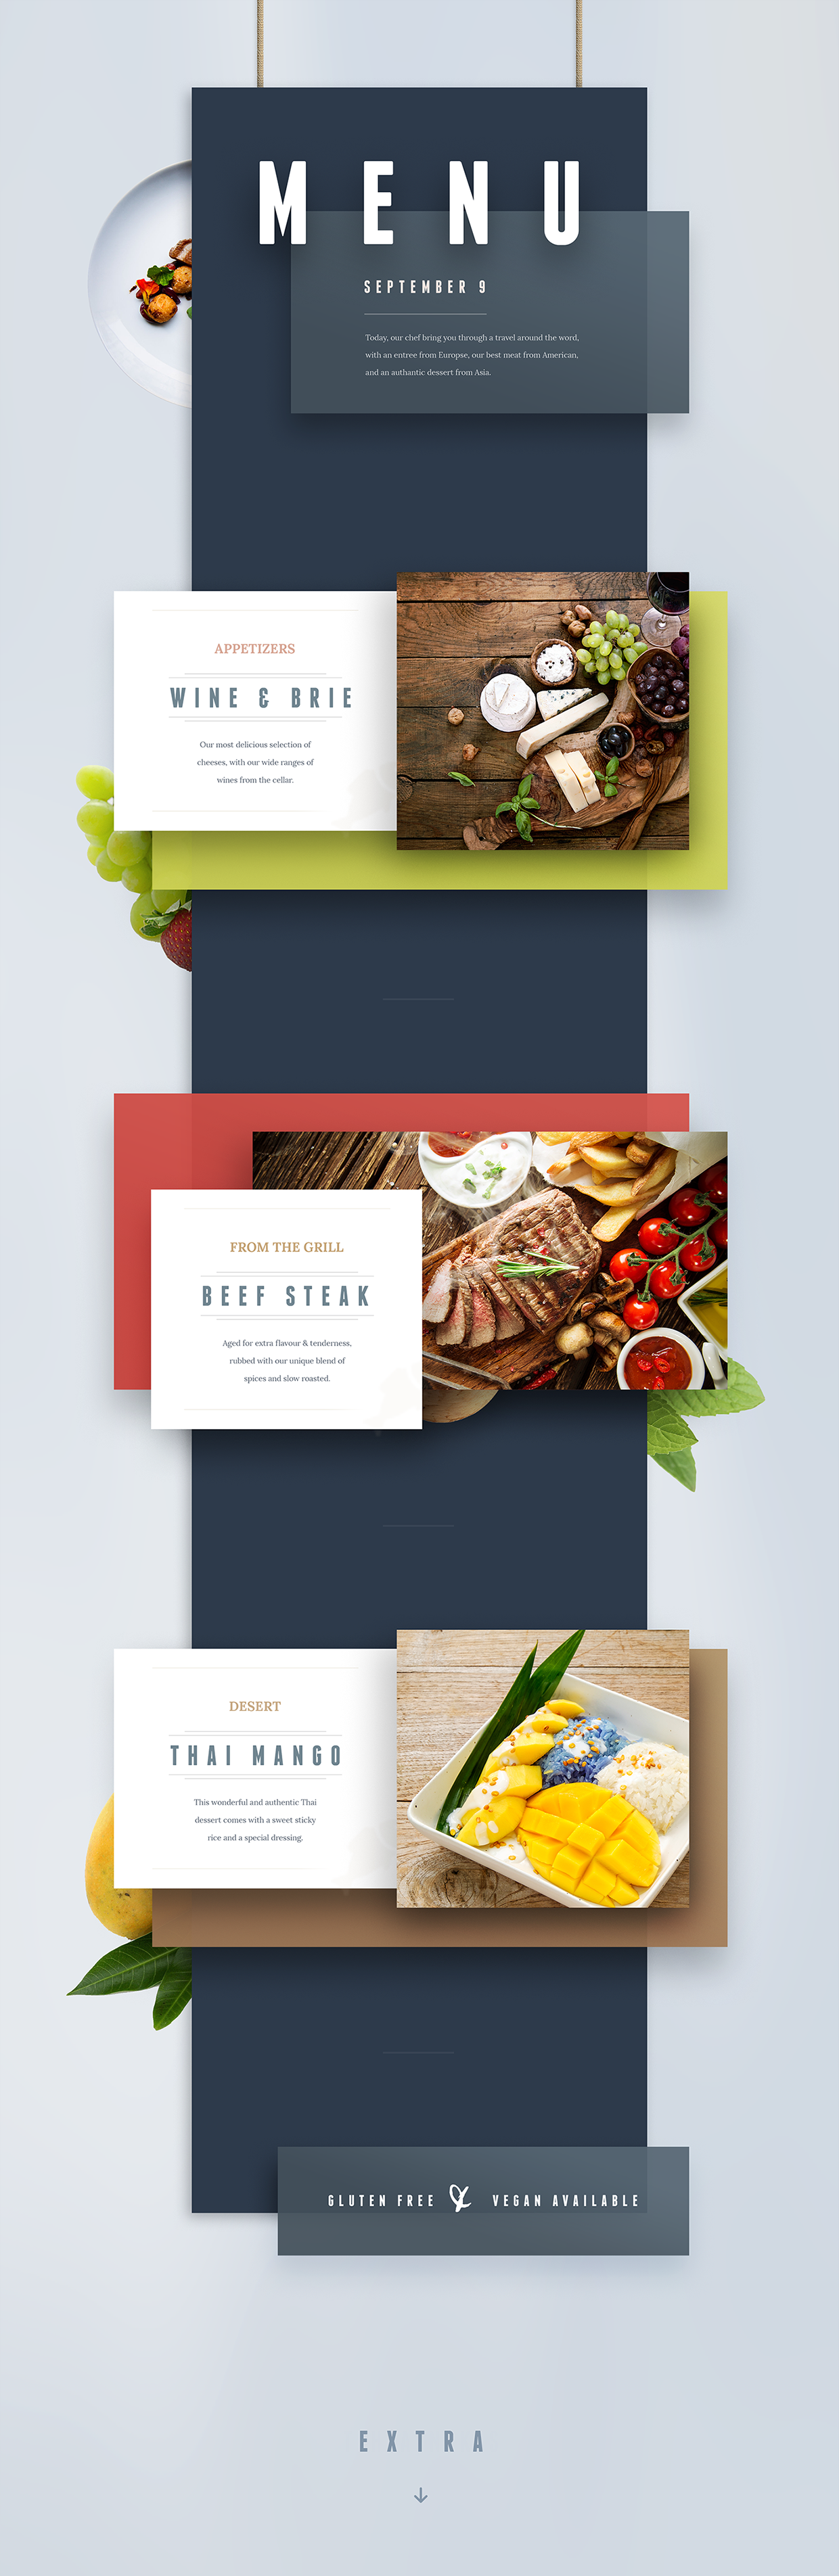 Menu from the world on Behance